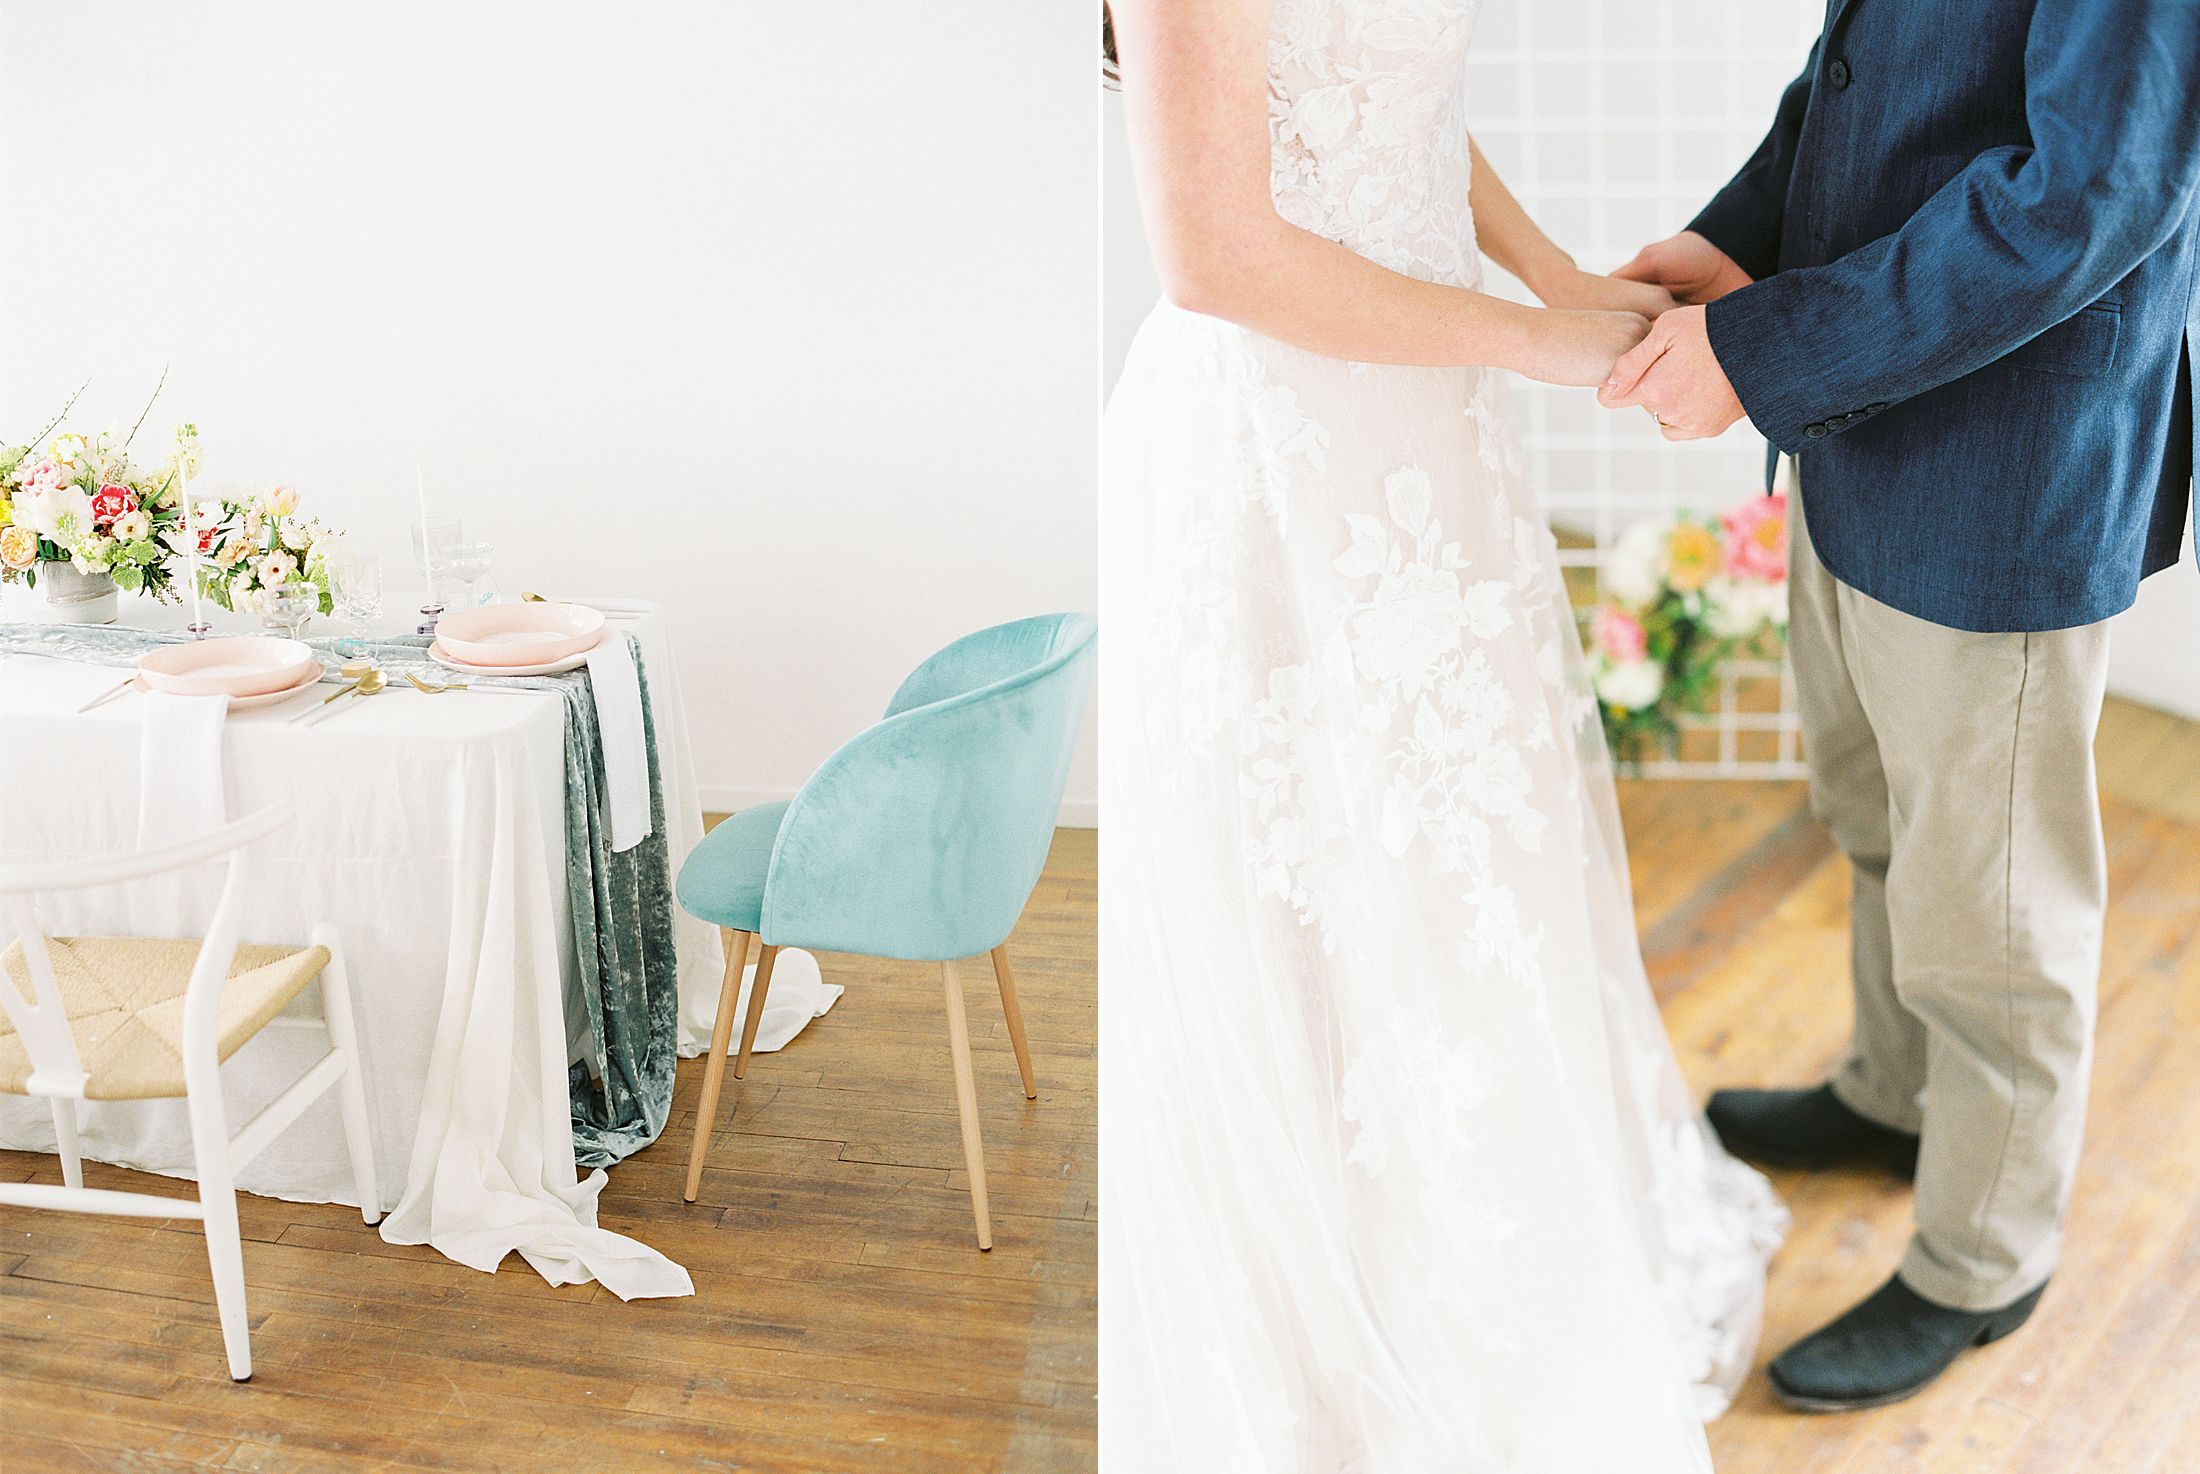 Bay Area Spring Wedding Inspiration - Ashley Baumgartner - Inspired By This - Party Crush Studio and Lens of Lenox Videography - Bay Area Wedding Photography_0027.jpg